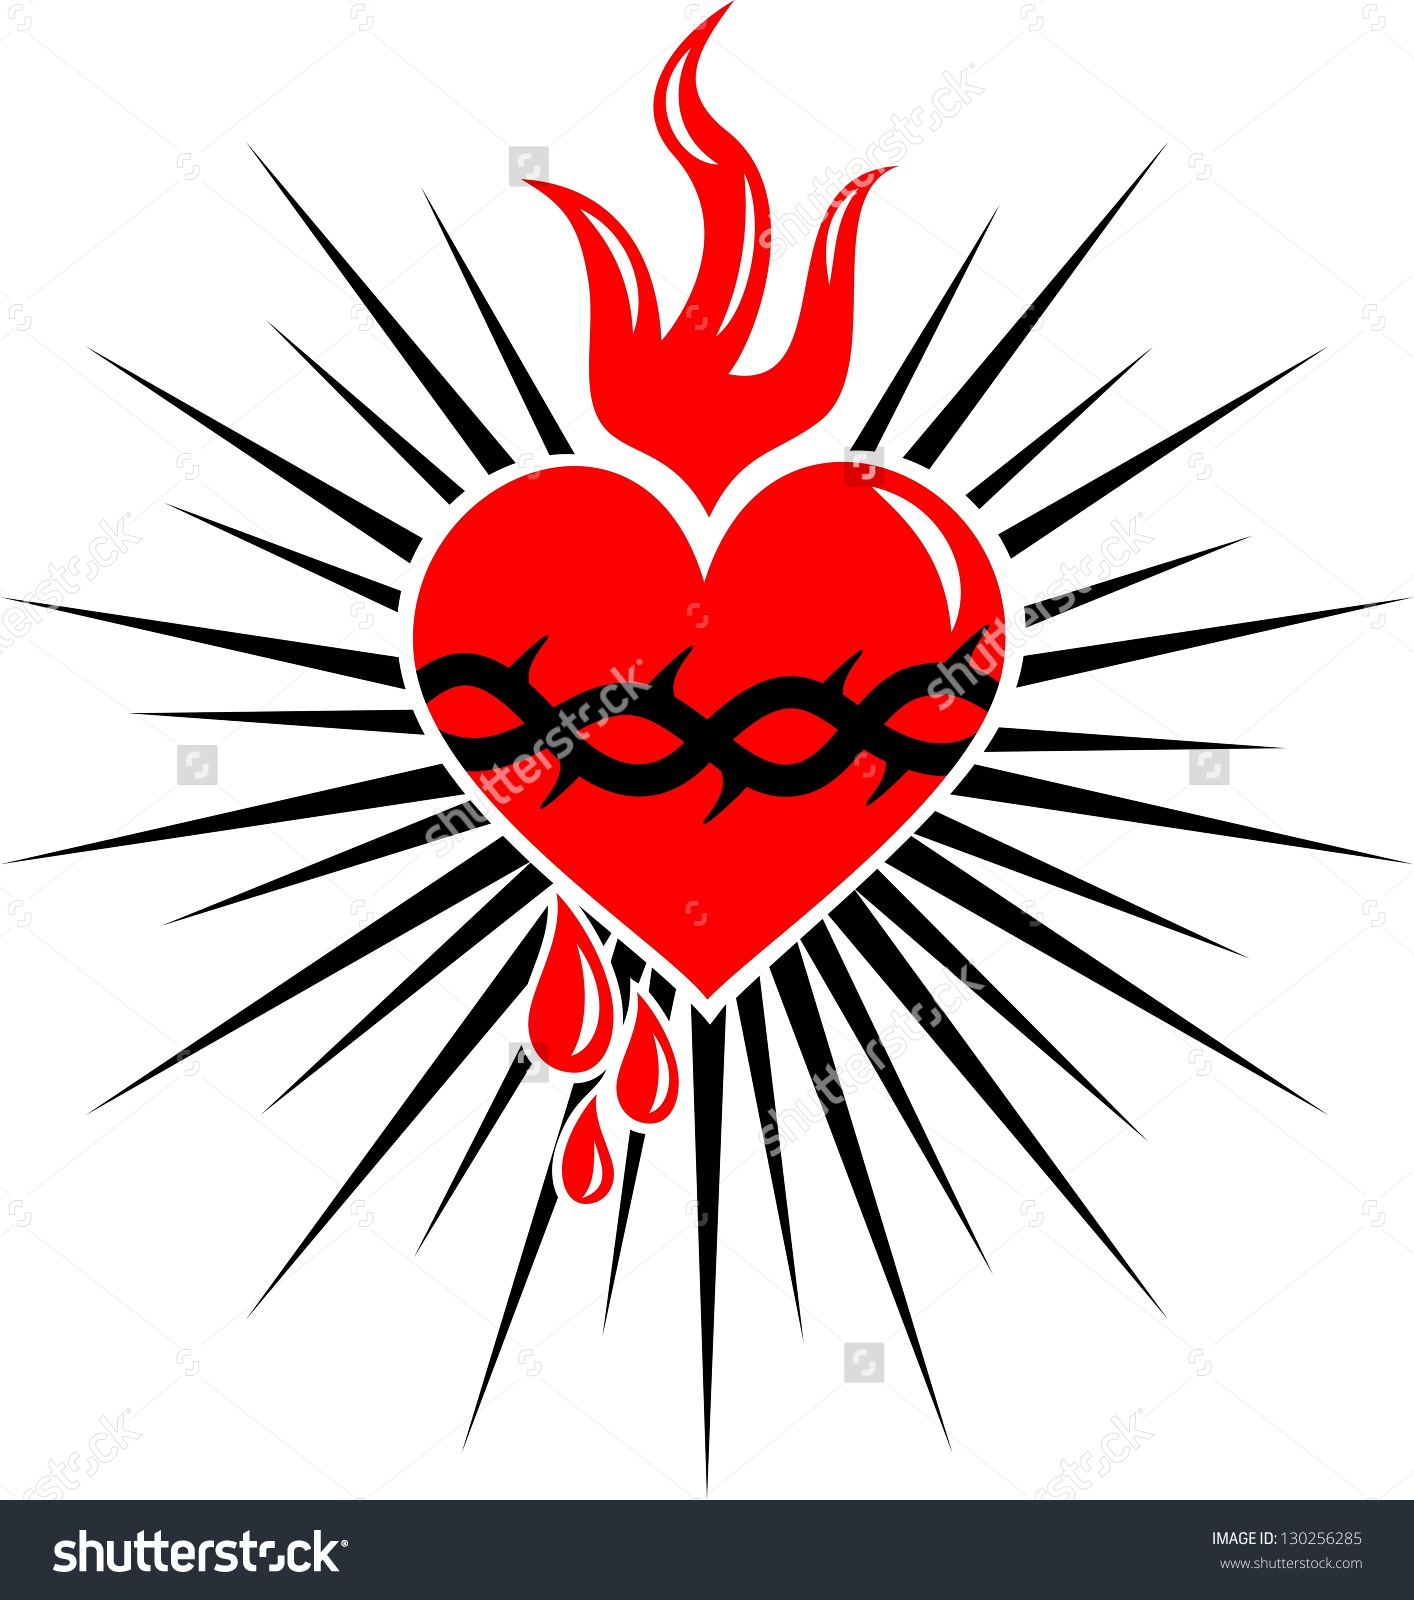 Clipart hearts jesus mary. Clipartfest and save to